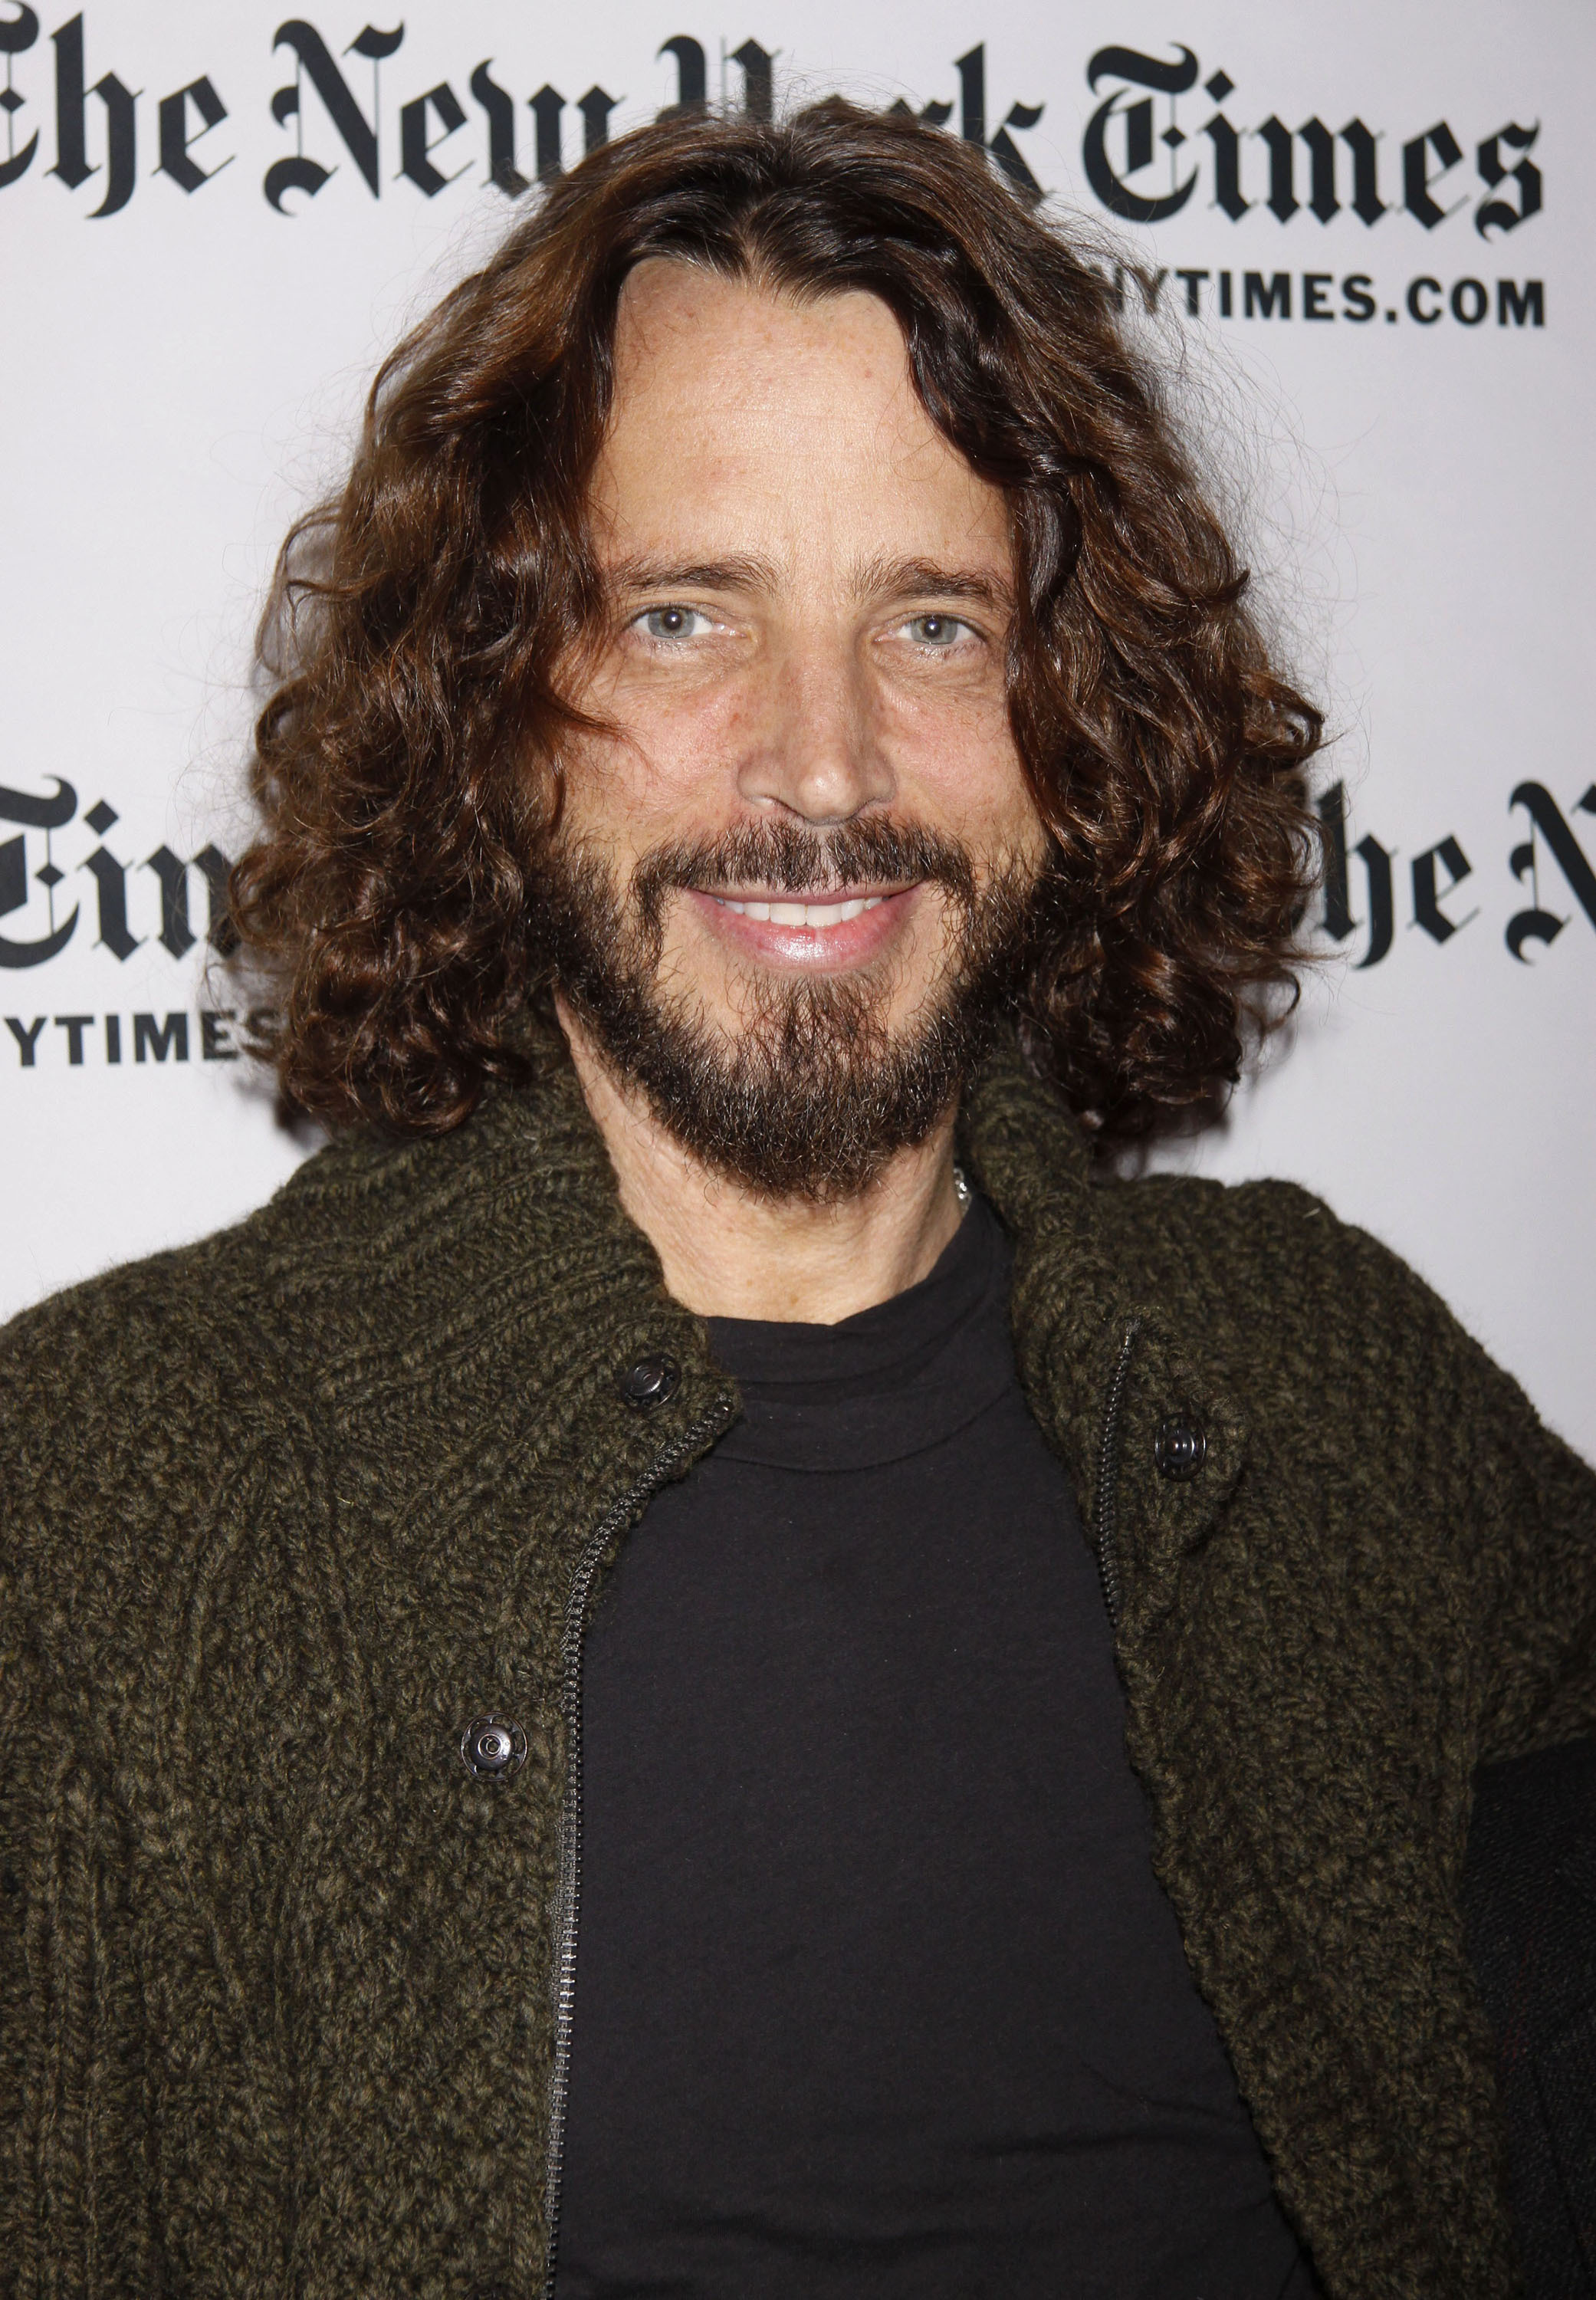 Celebs react to Chris Cornell's death